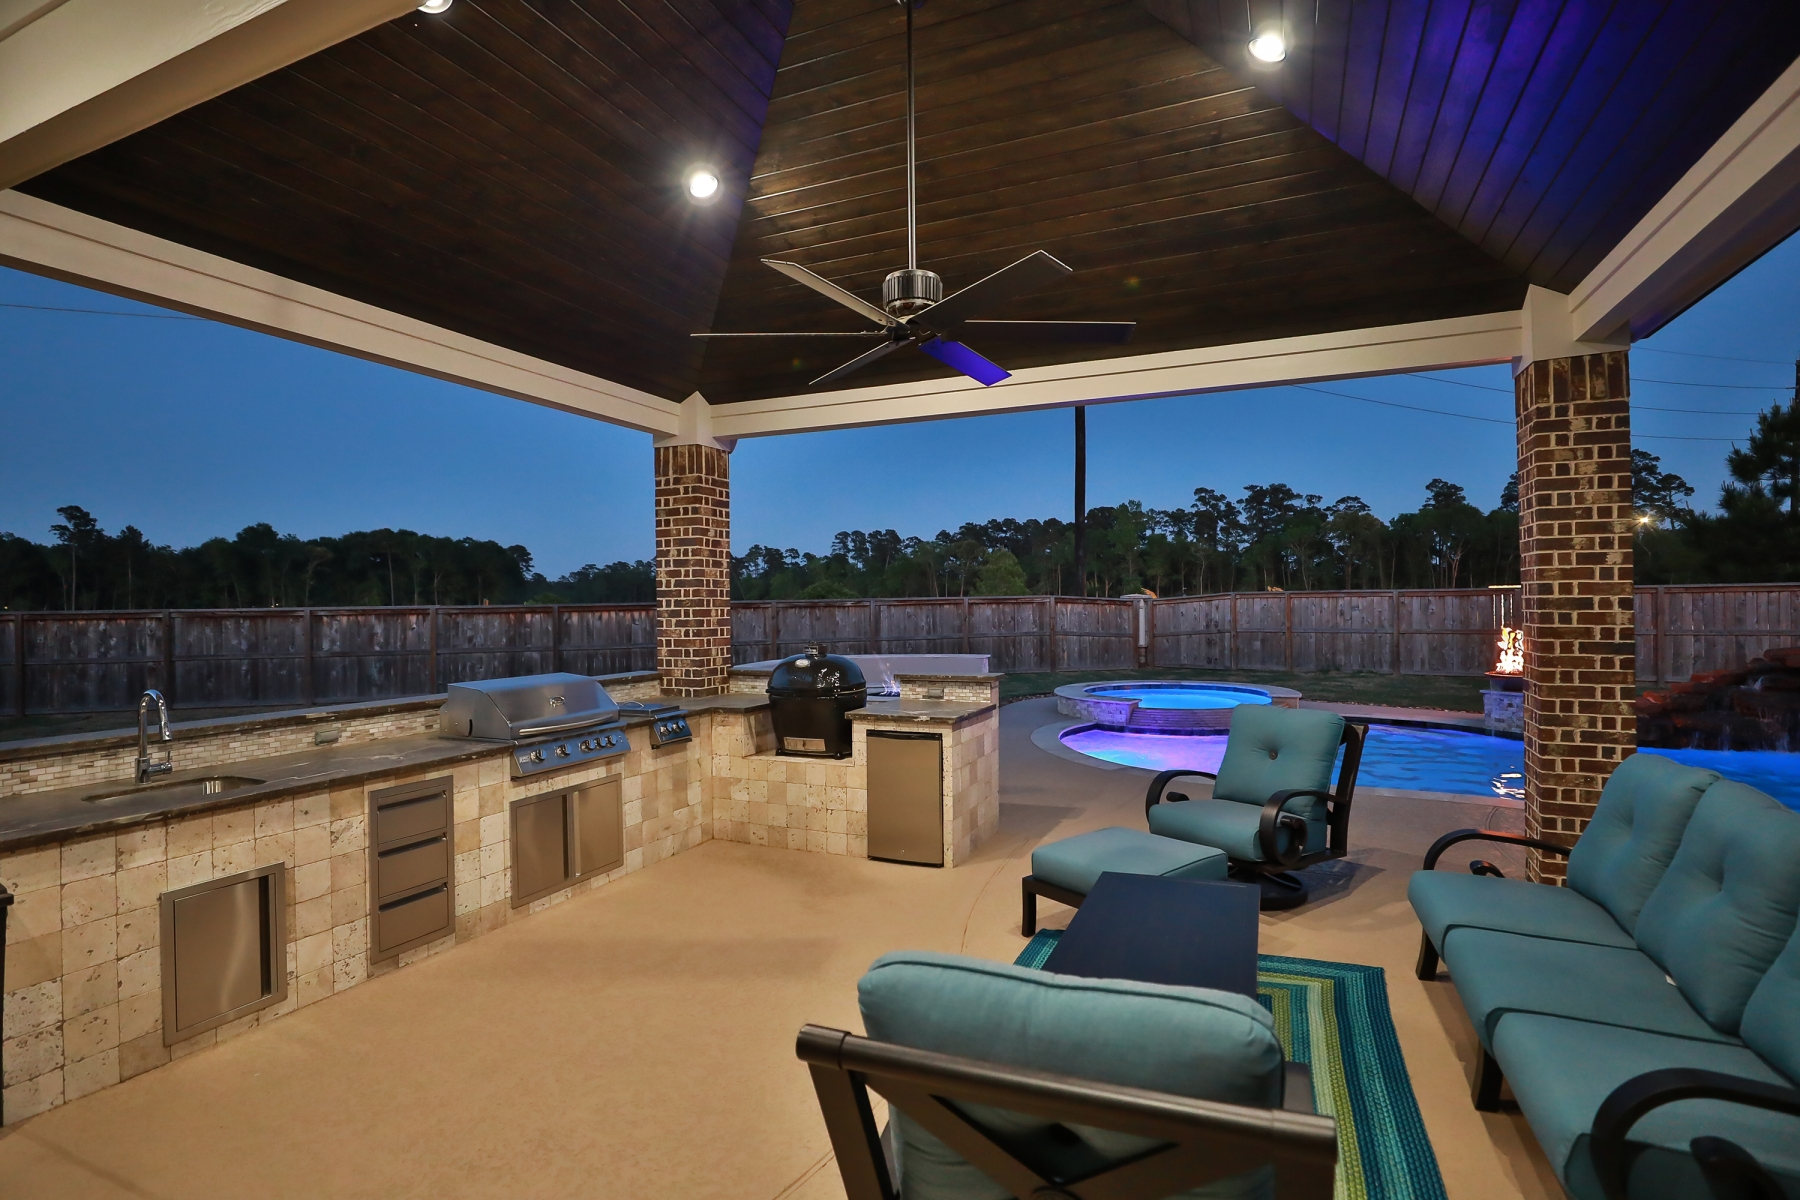 Outdoor Kitchen and Living Area Overlooking Pool at Night